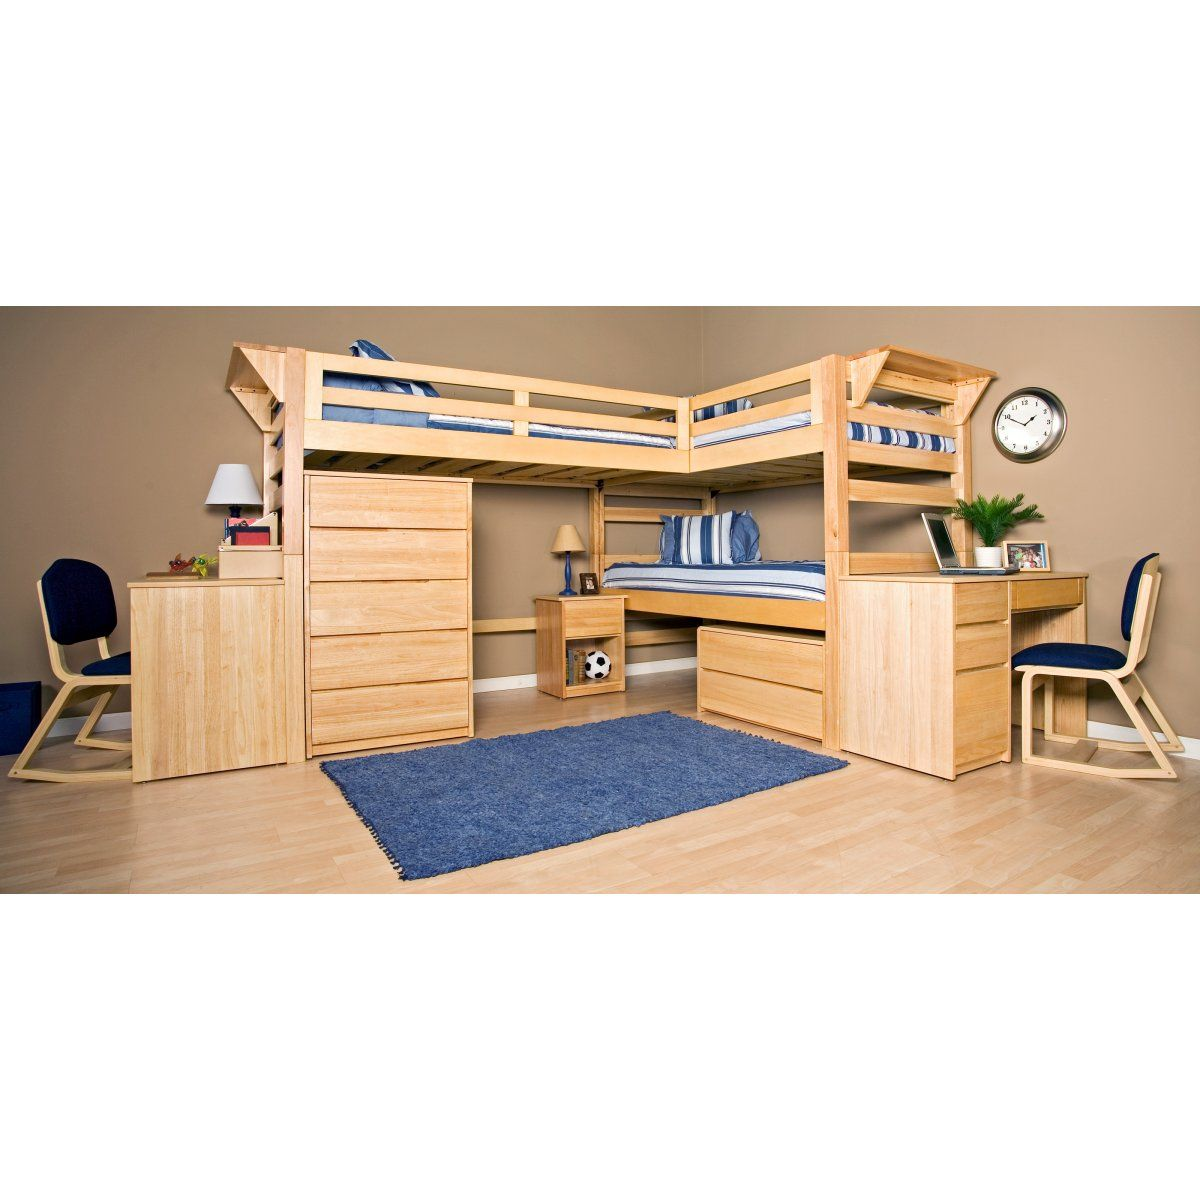 Graduate Triple Lindy Twin Xl Loft Bed With Third Bed Bunk Bed With Desk Kids Bunk Beds L Shaped Bunk Beds